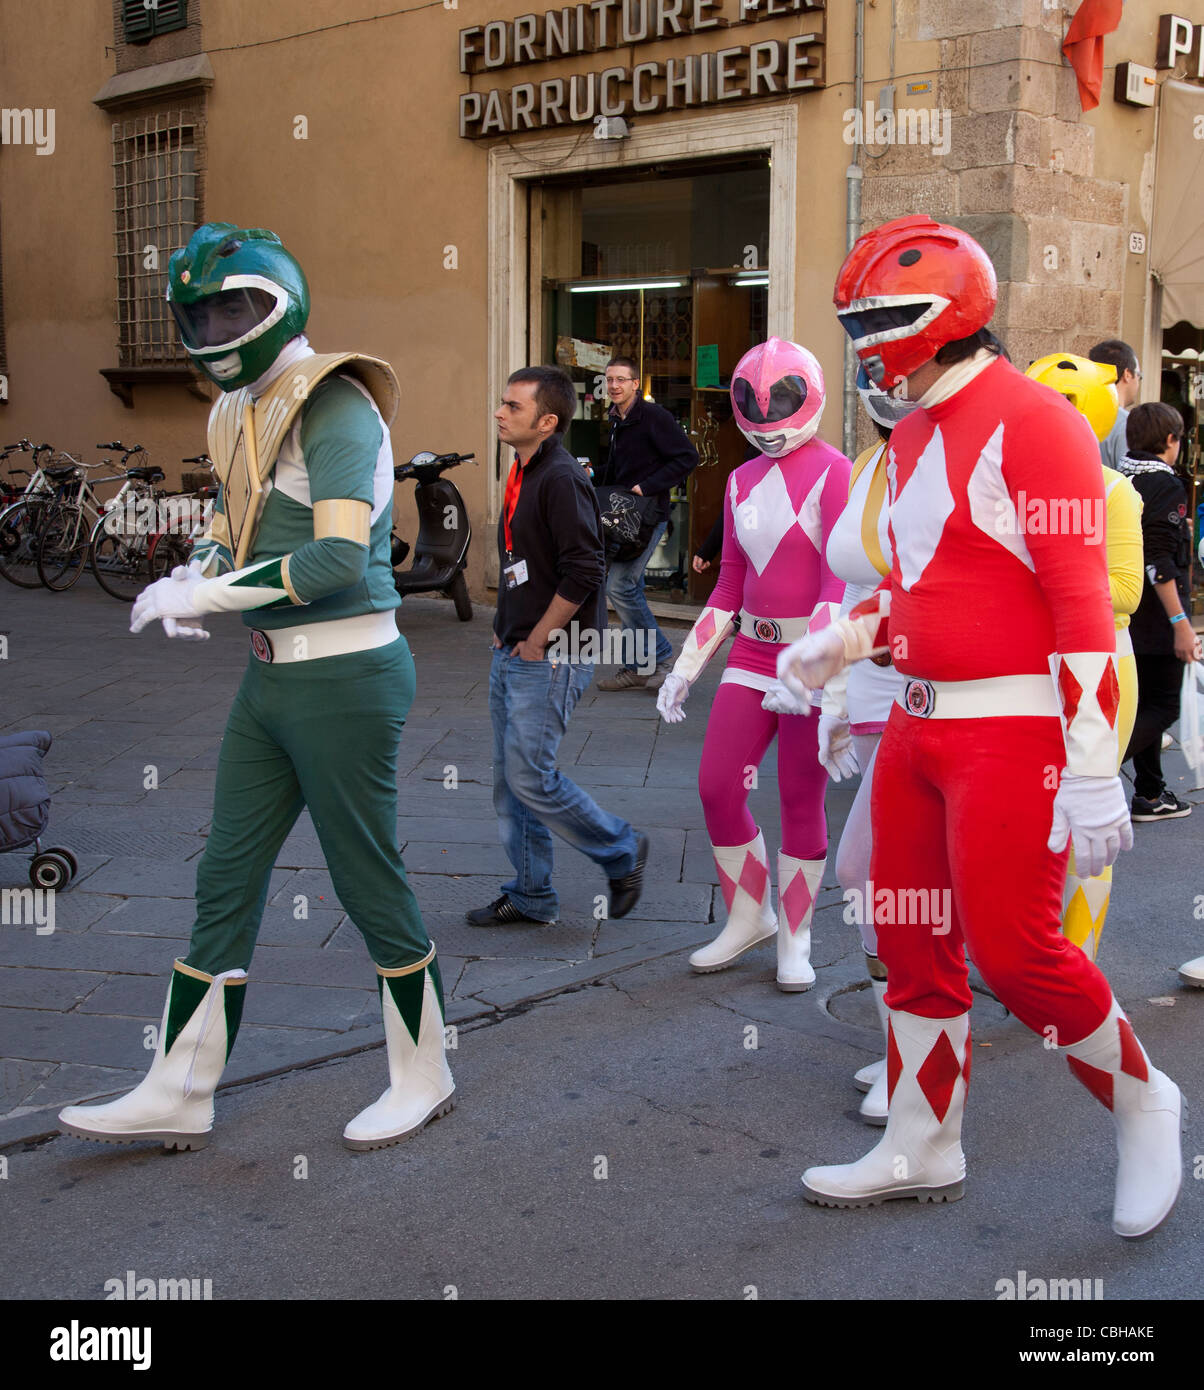 People dressed as Mighty Morphin' Power Rangers during Lucca comics and games festival, 2011 Tuscany, Italy - Stock Image